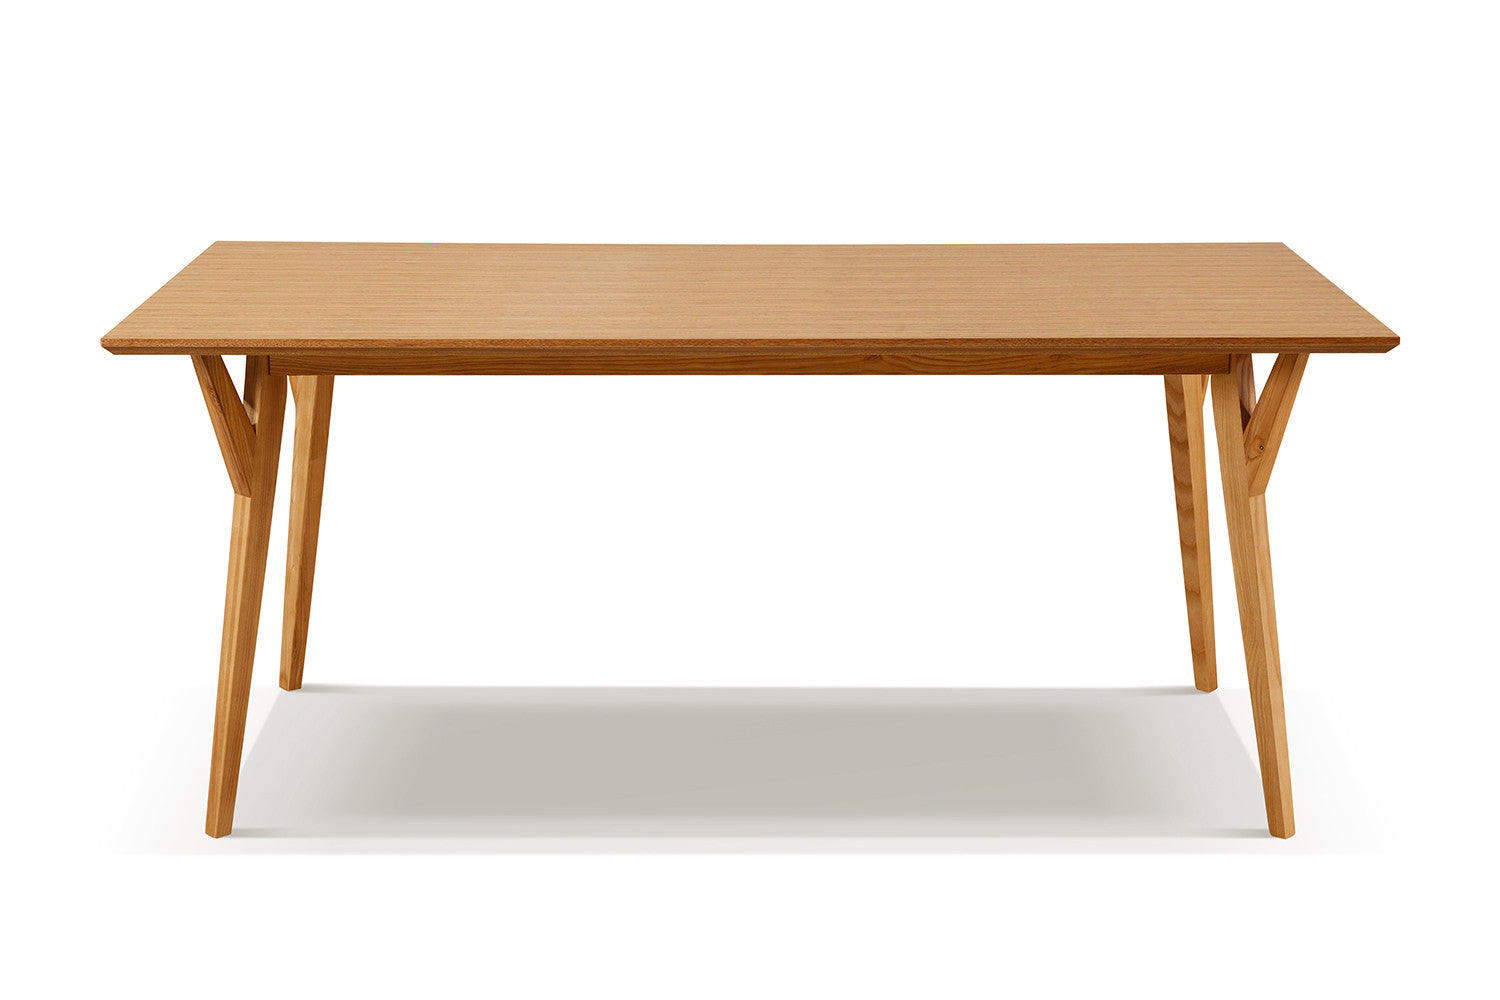 Table de salle manger scandinave en bois linth dewarens for Table rectangulaire scandinave